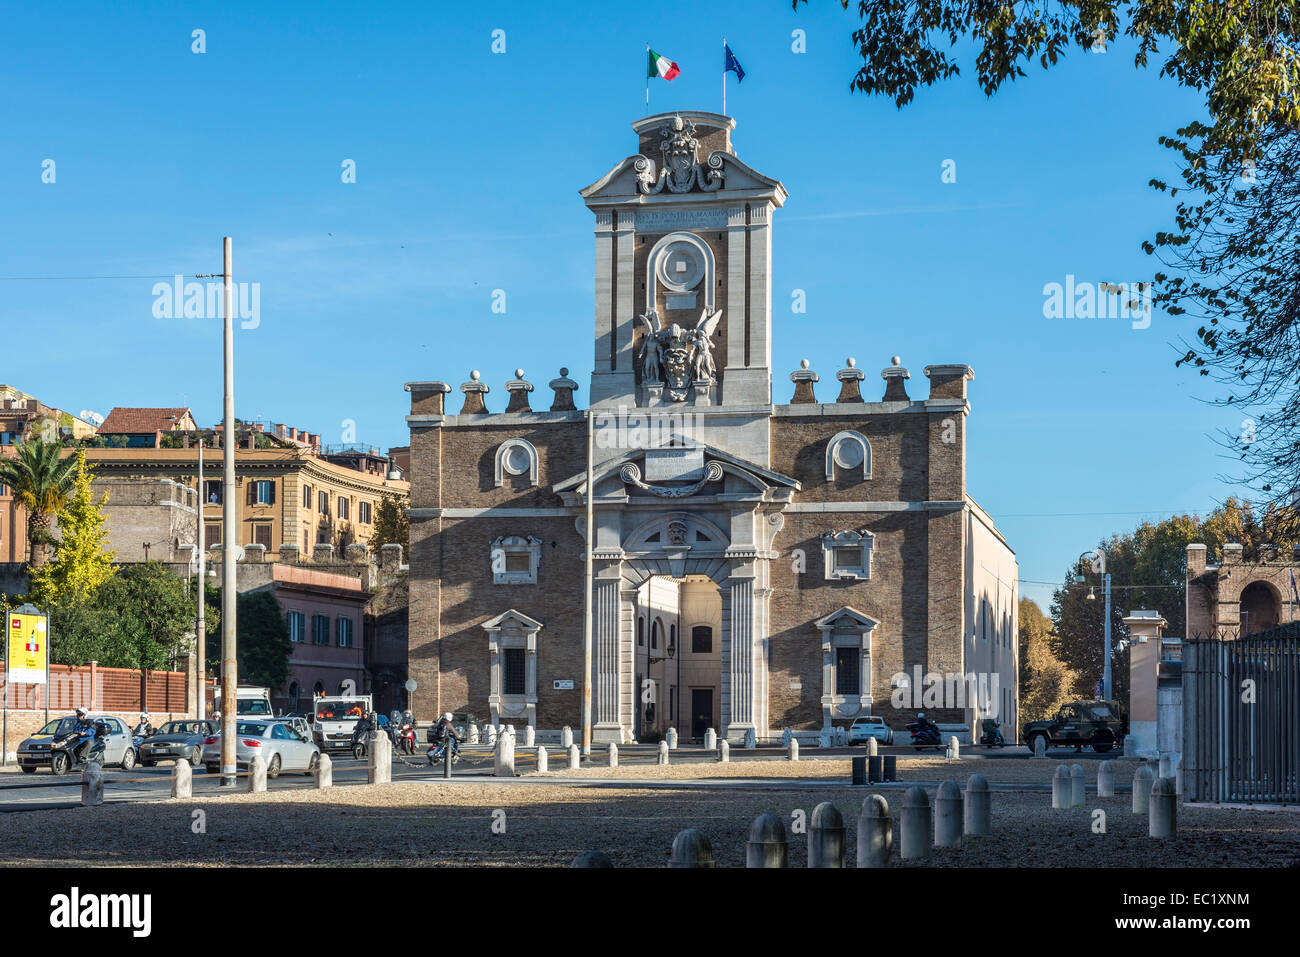 Porta Pia, double gate in the Aurelian Walls, from 1561 to 1565, Michelangelo, historical museum, Rome, Lazio, Italy - Stock Image